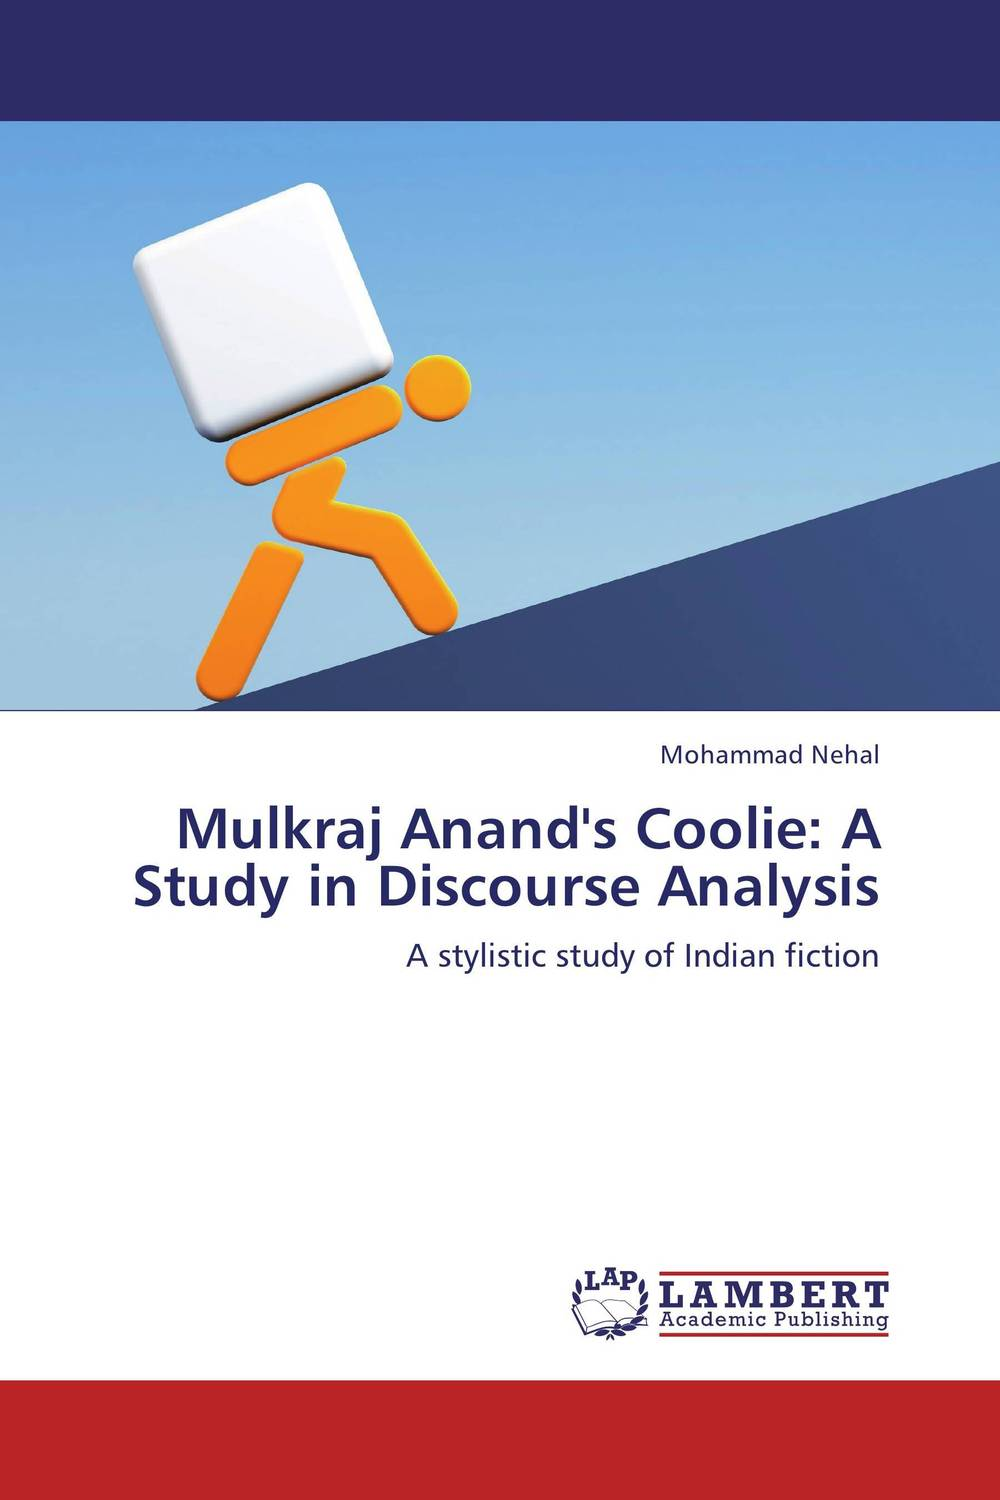 Mulkraj Anand's Coolie: A Study in Discourse Analysis the lonely polygamist – a novel